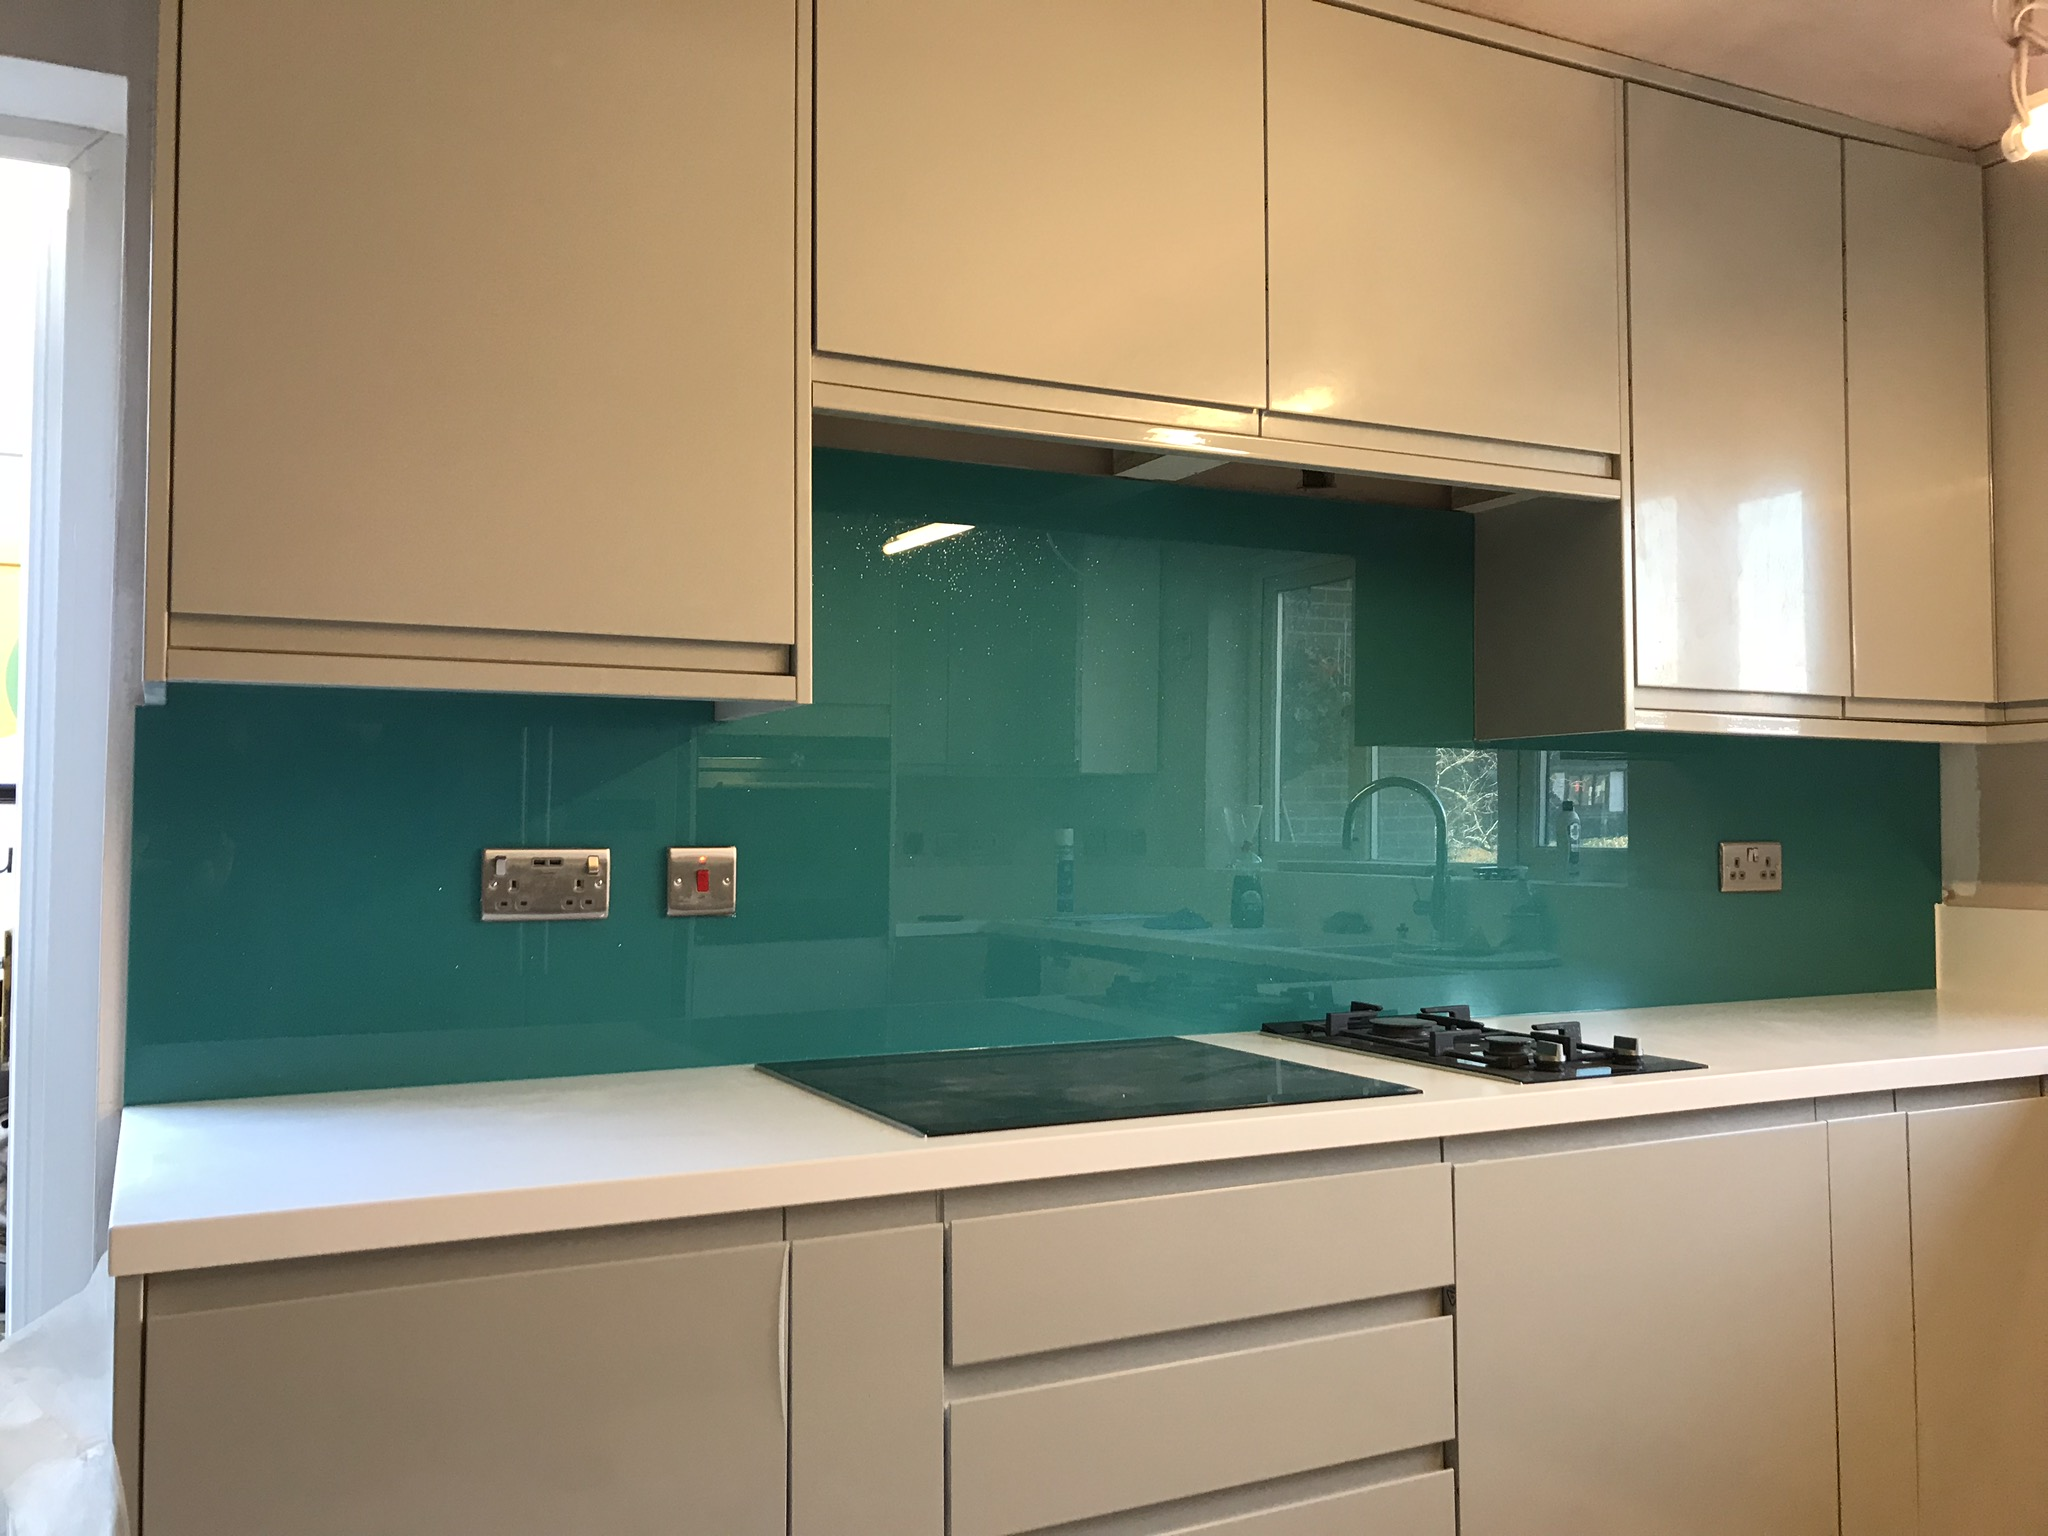 Optikote Coloured Glass Splashbacks, Wall Coverings and Worktops